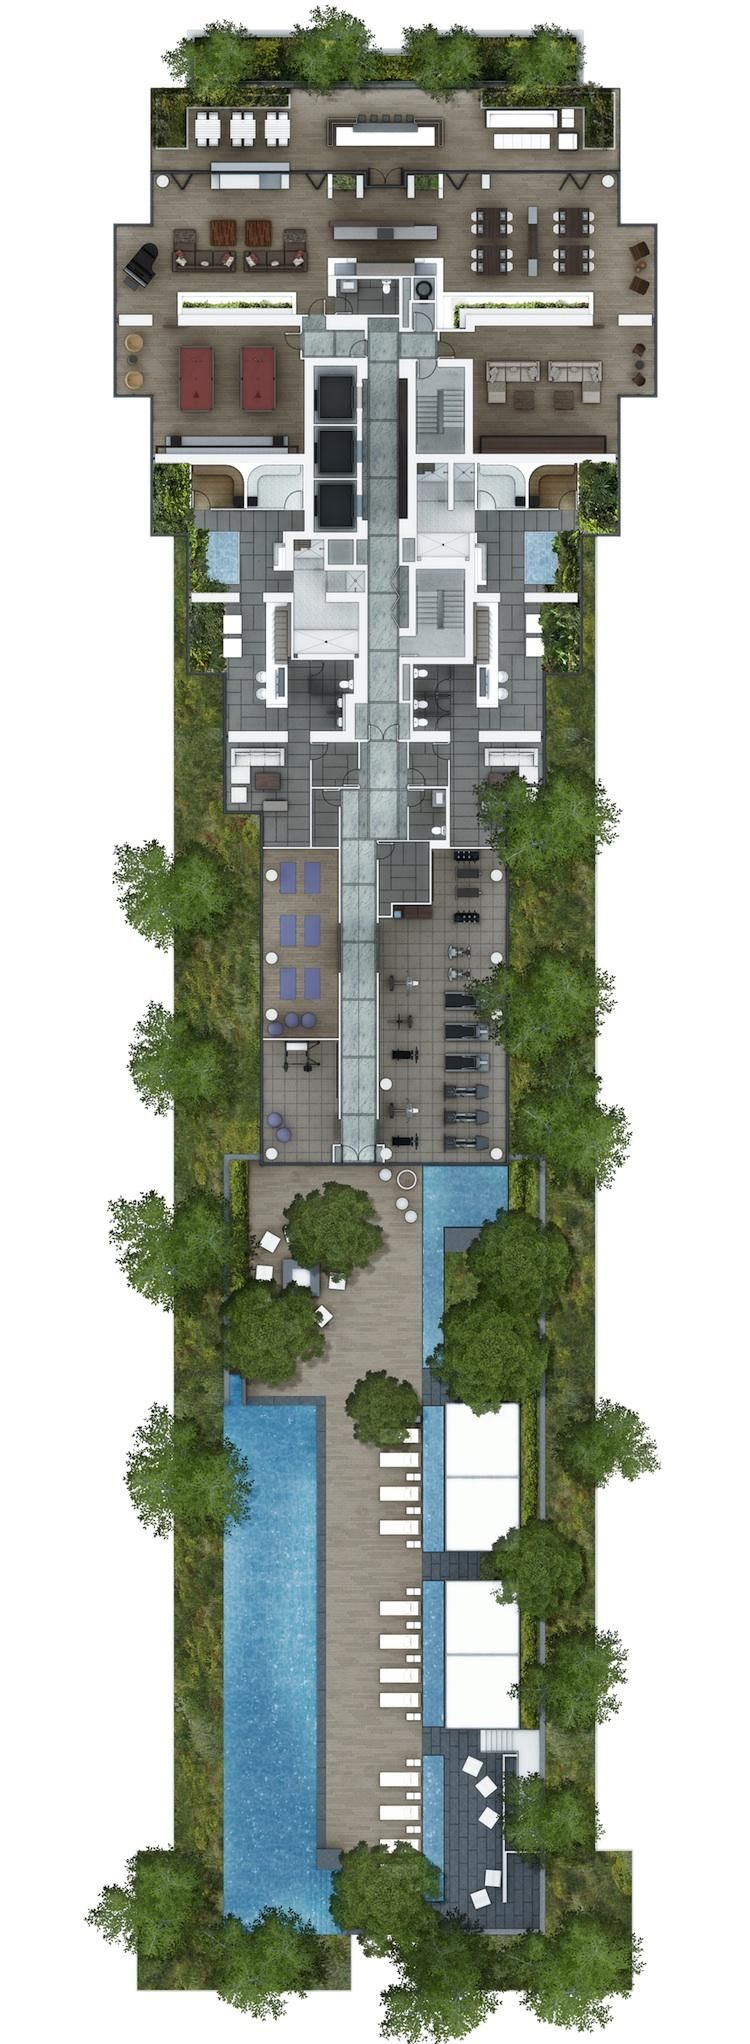 rooftop amenity plan - Google Search